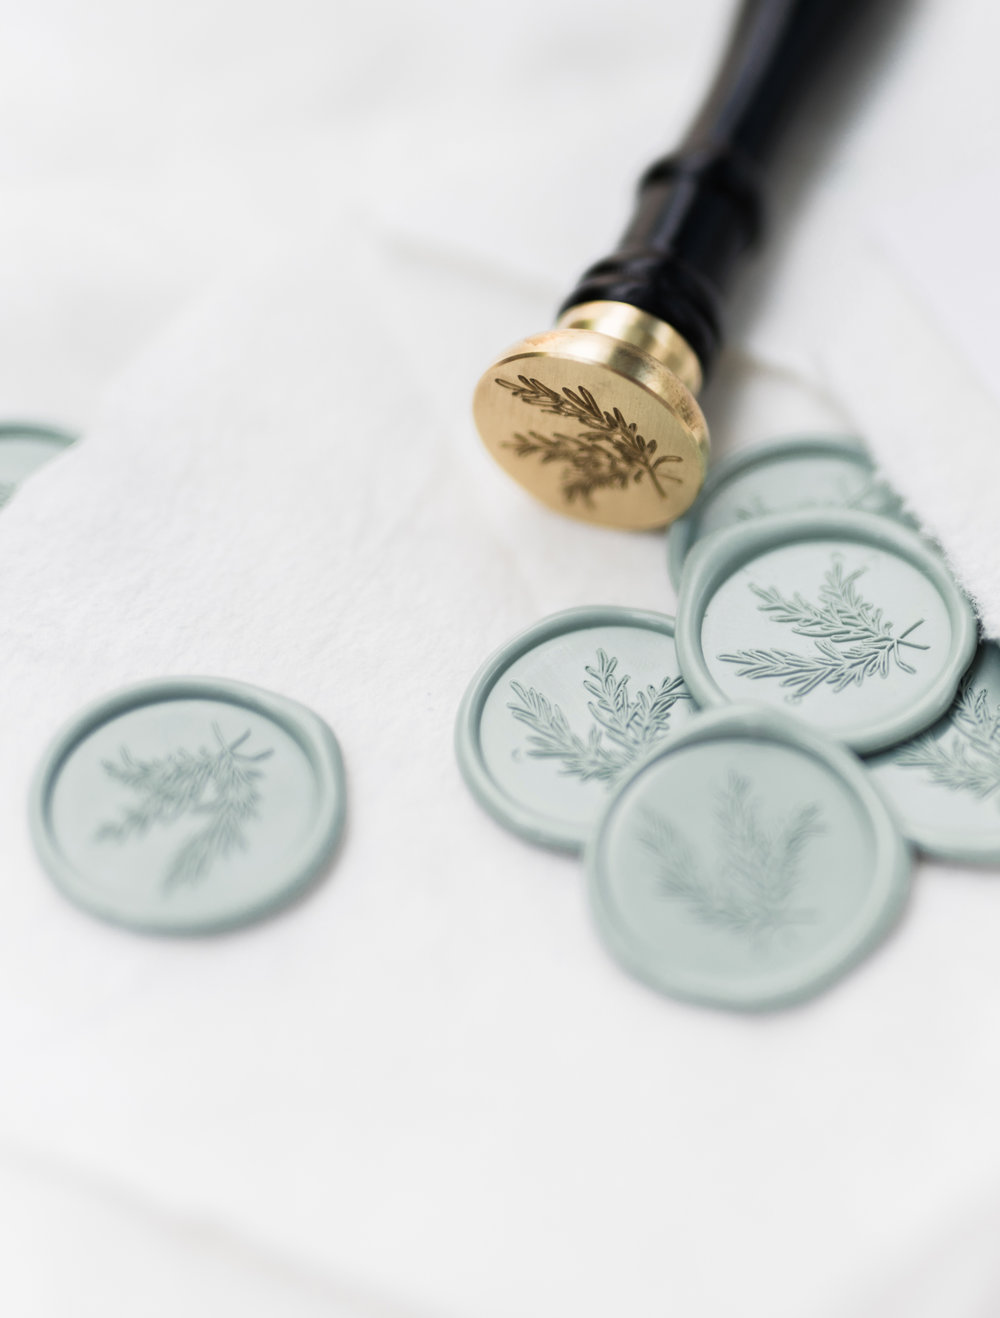 I love this beautiful, wax seal design with the greenery!  Find out more about this design and a few more favorite wax seal stamp designs by OTHER industry pros in my latest blog post! www.BlushedDesign.com #waxseals #waxsealstamp #theartisaireway #artisaire